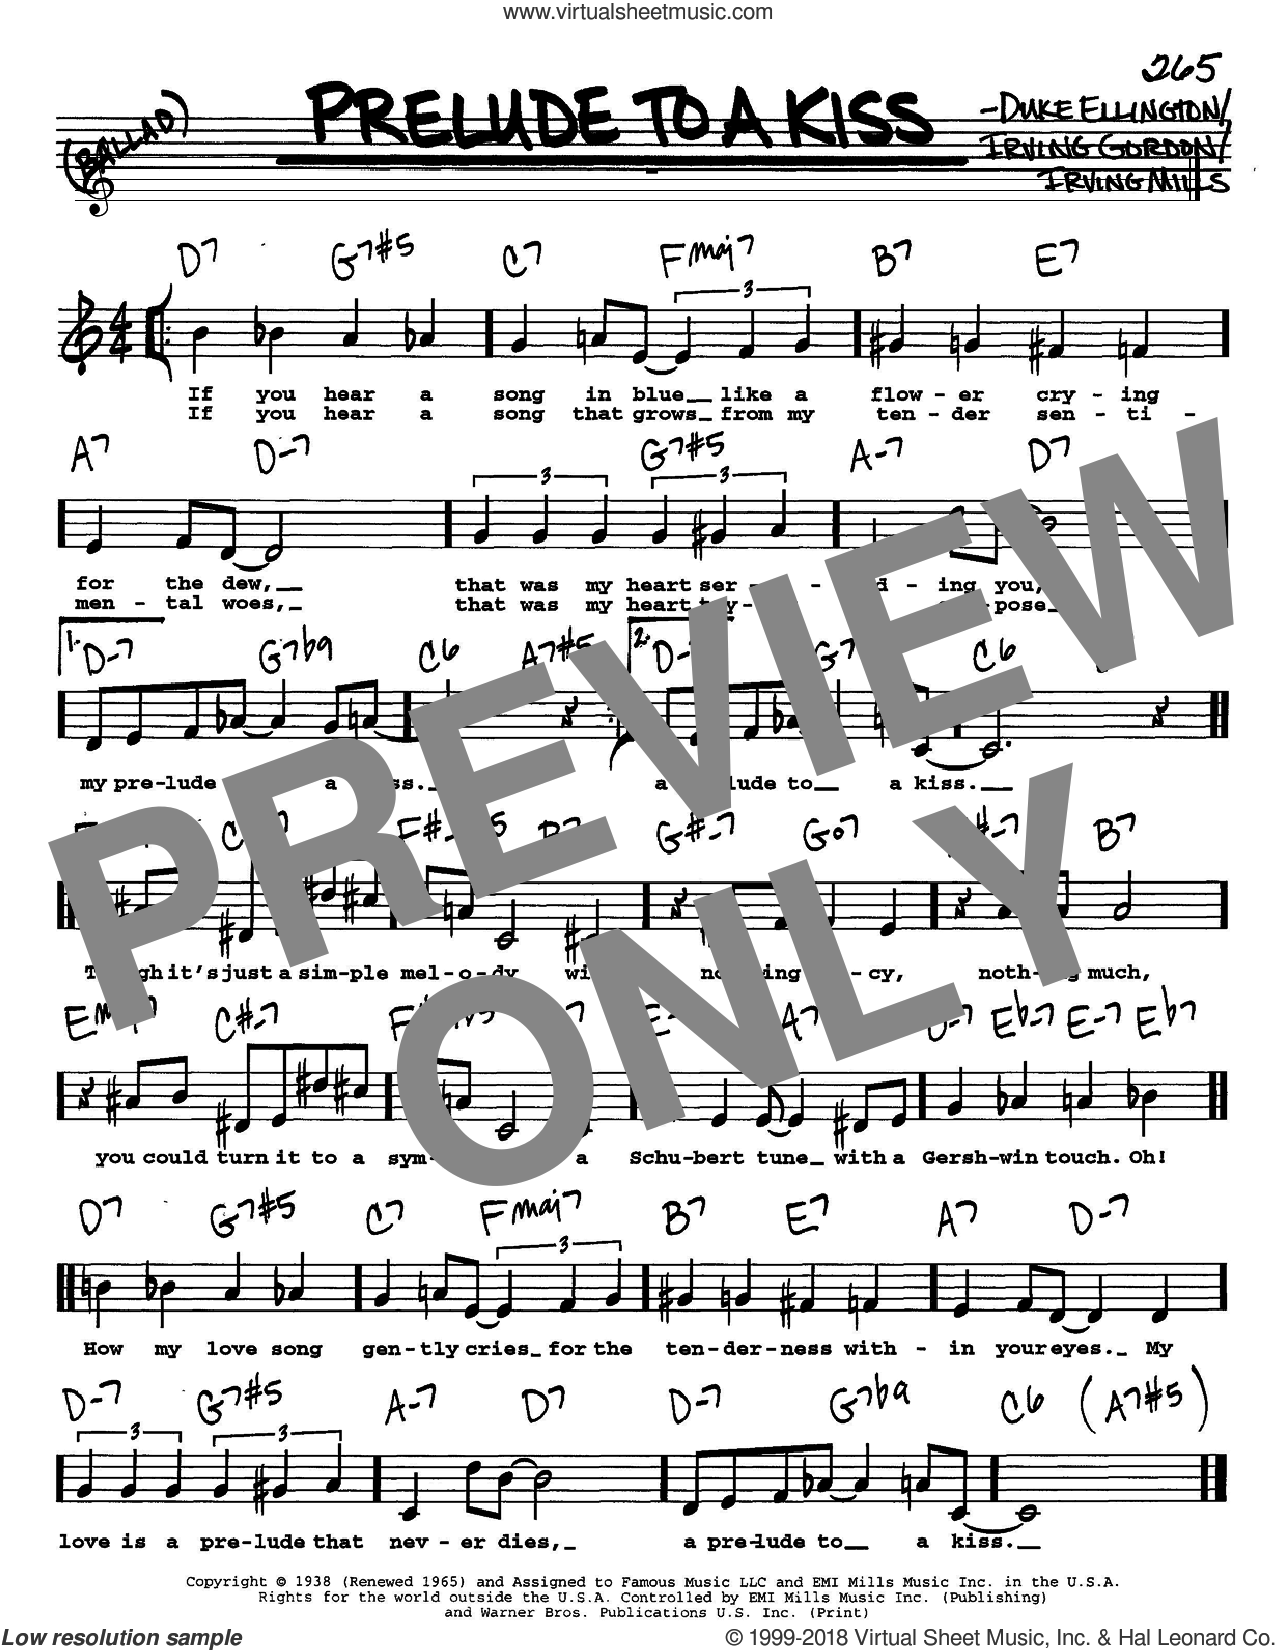 Prelude To A Kiss sheet music for voice and other instruments (Vocal Volume 2) by Irving Mills, Duke Ellington and Irving Gordon. Score Image Preview.